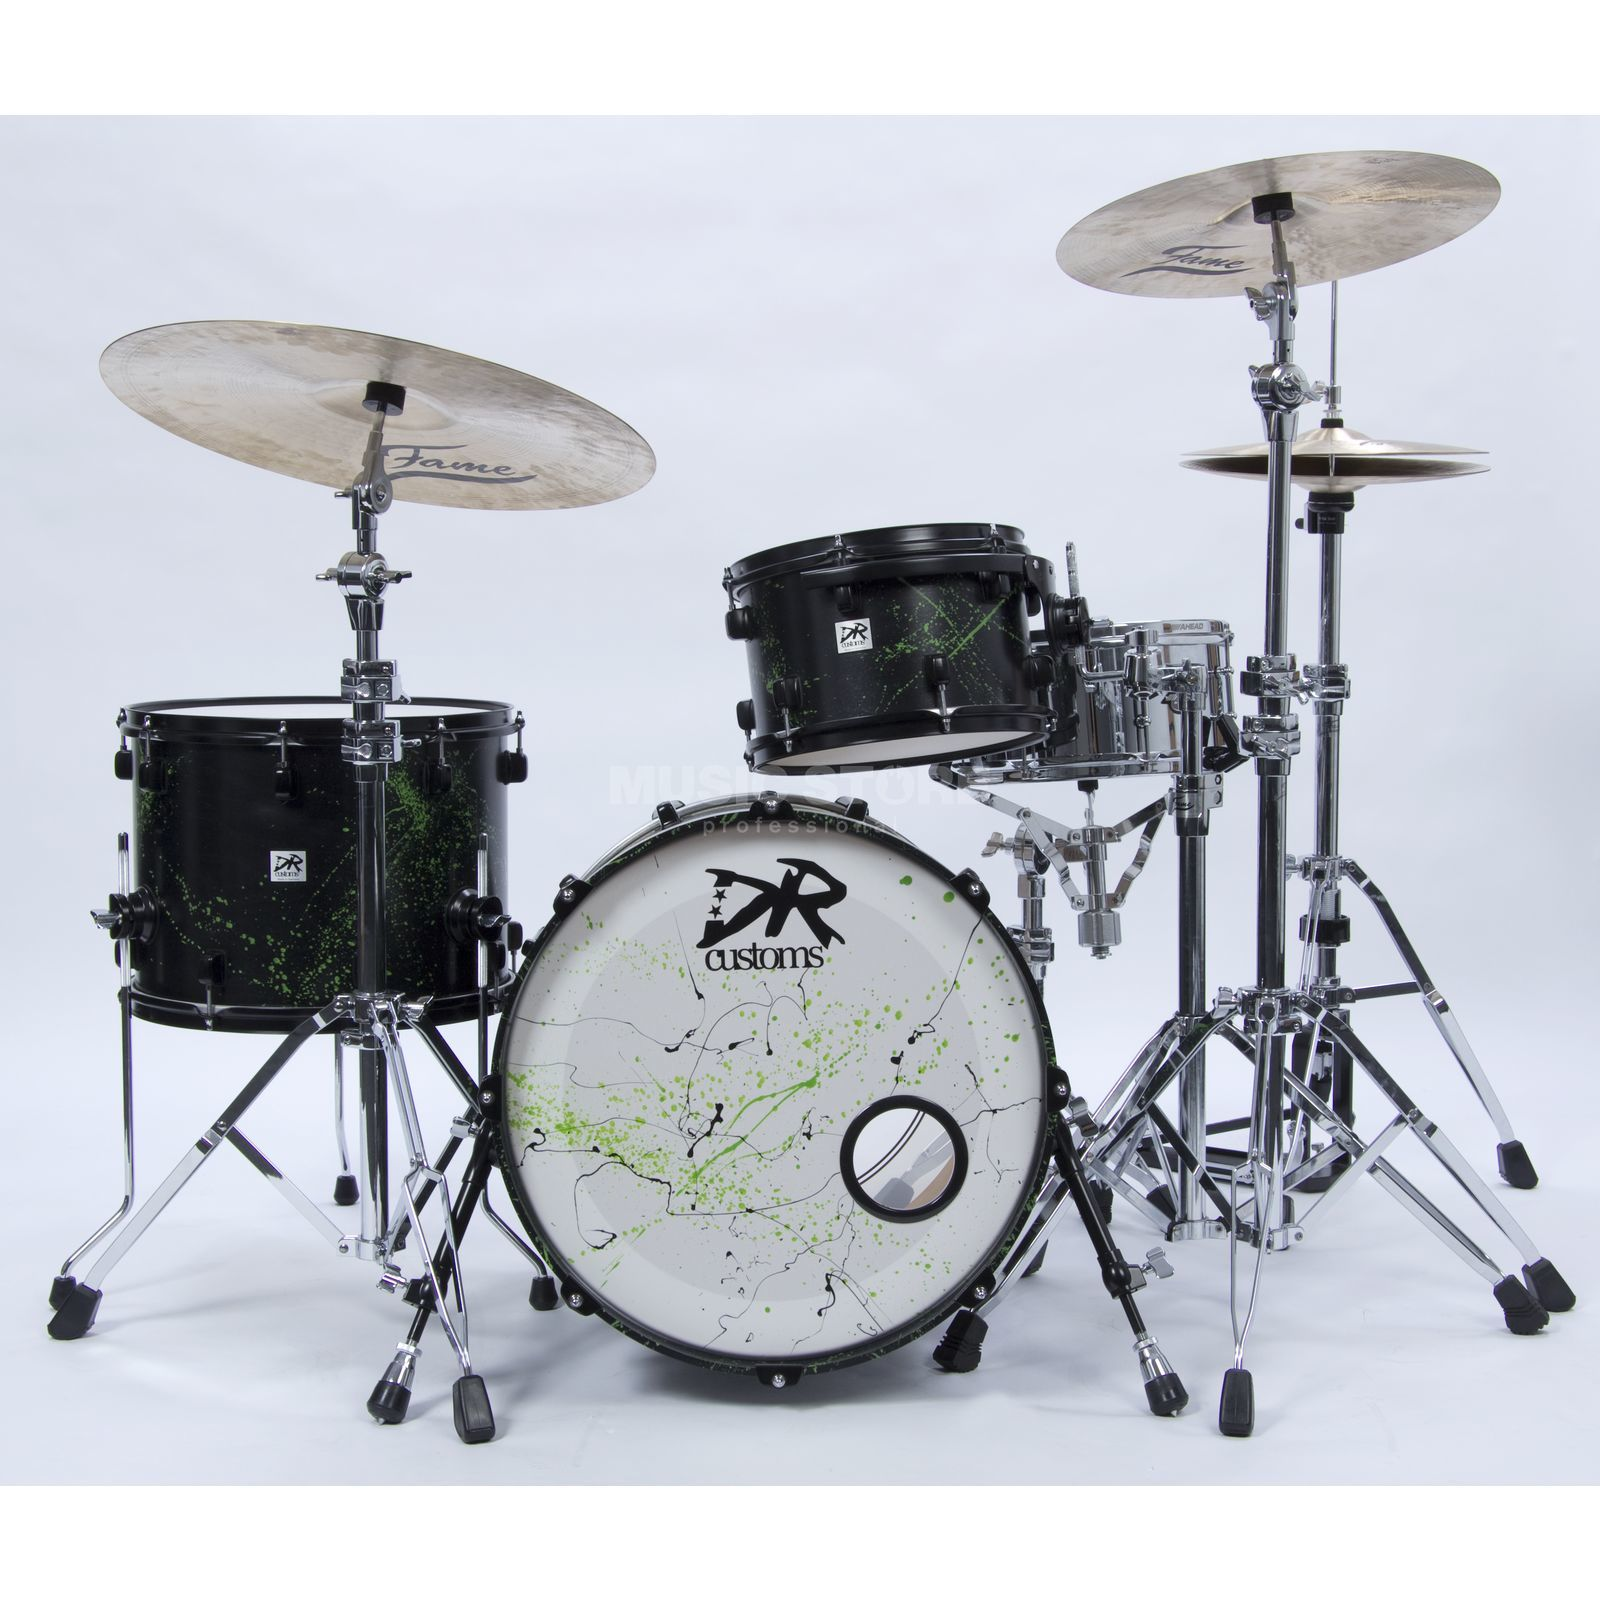 DR Customs Splatter ShellSet, #Black Satin, Green Splatter Product Image